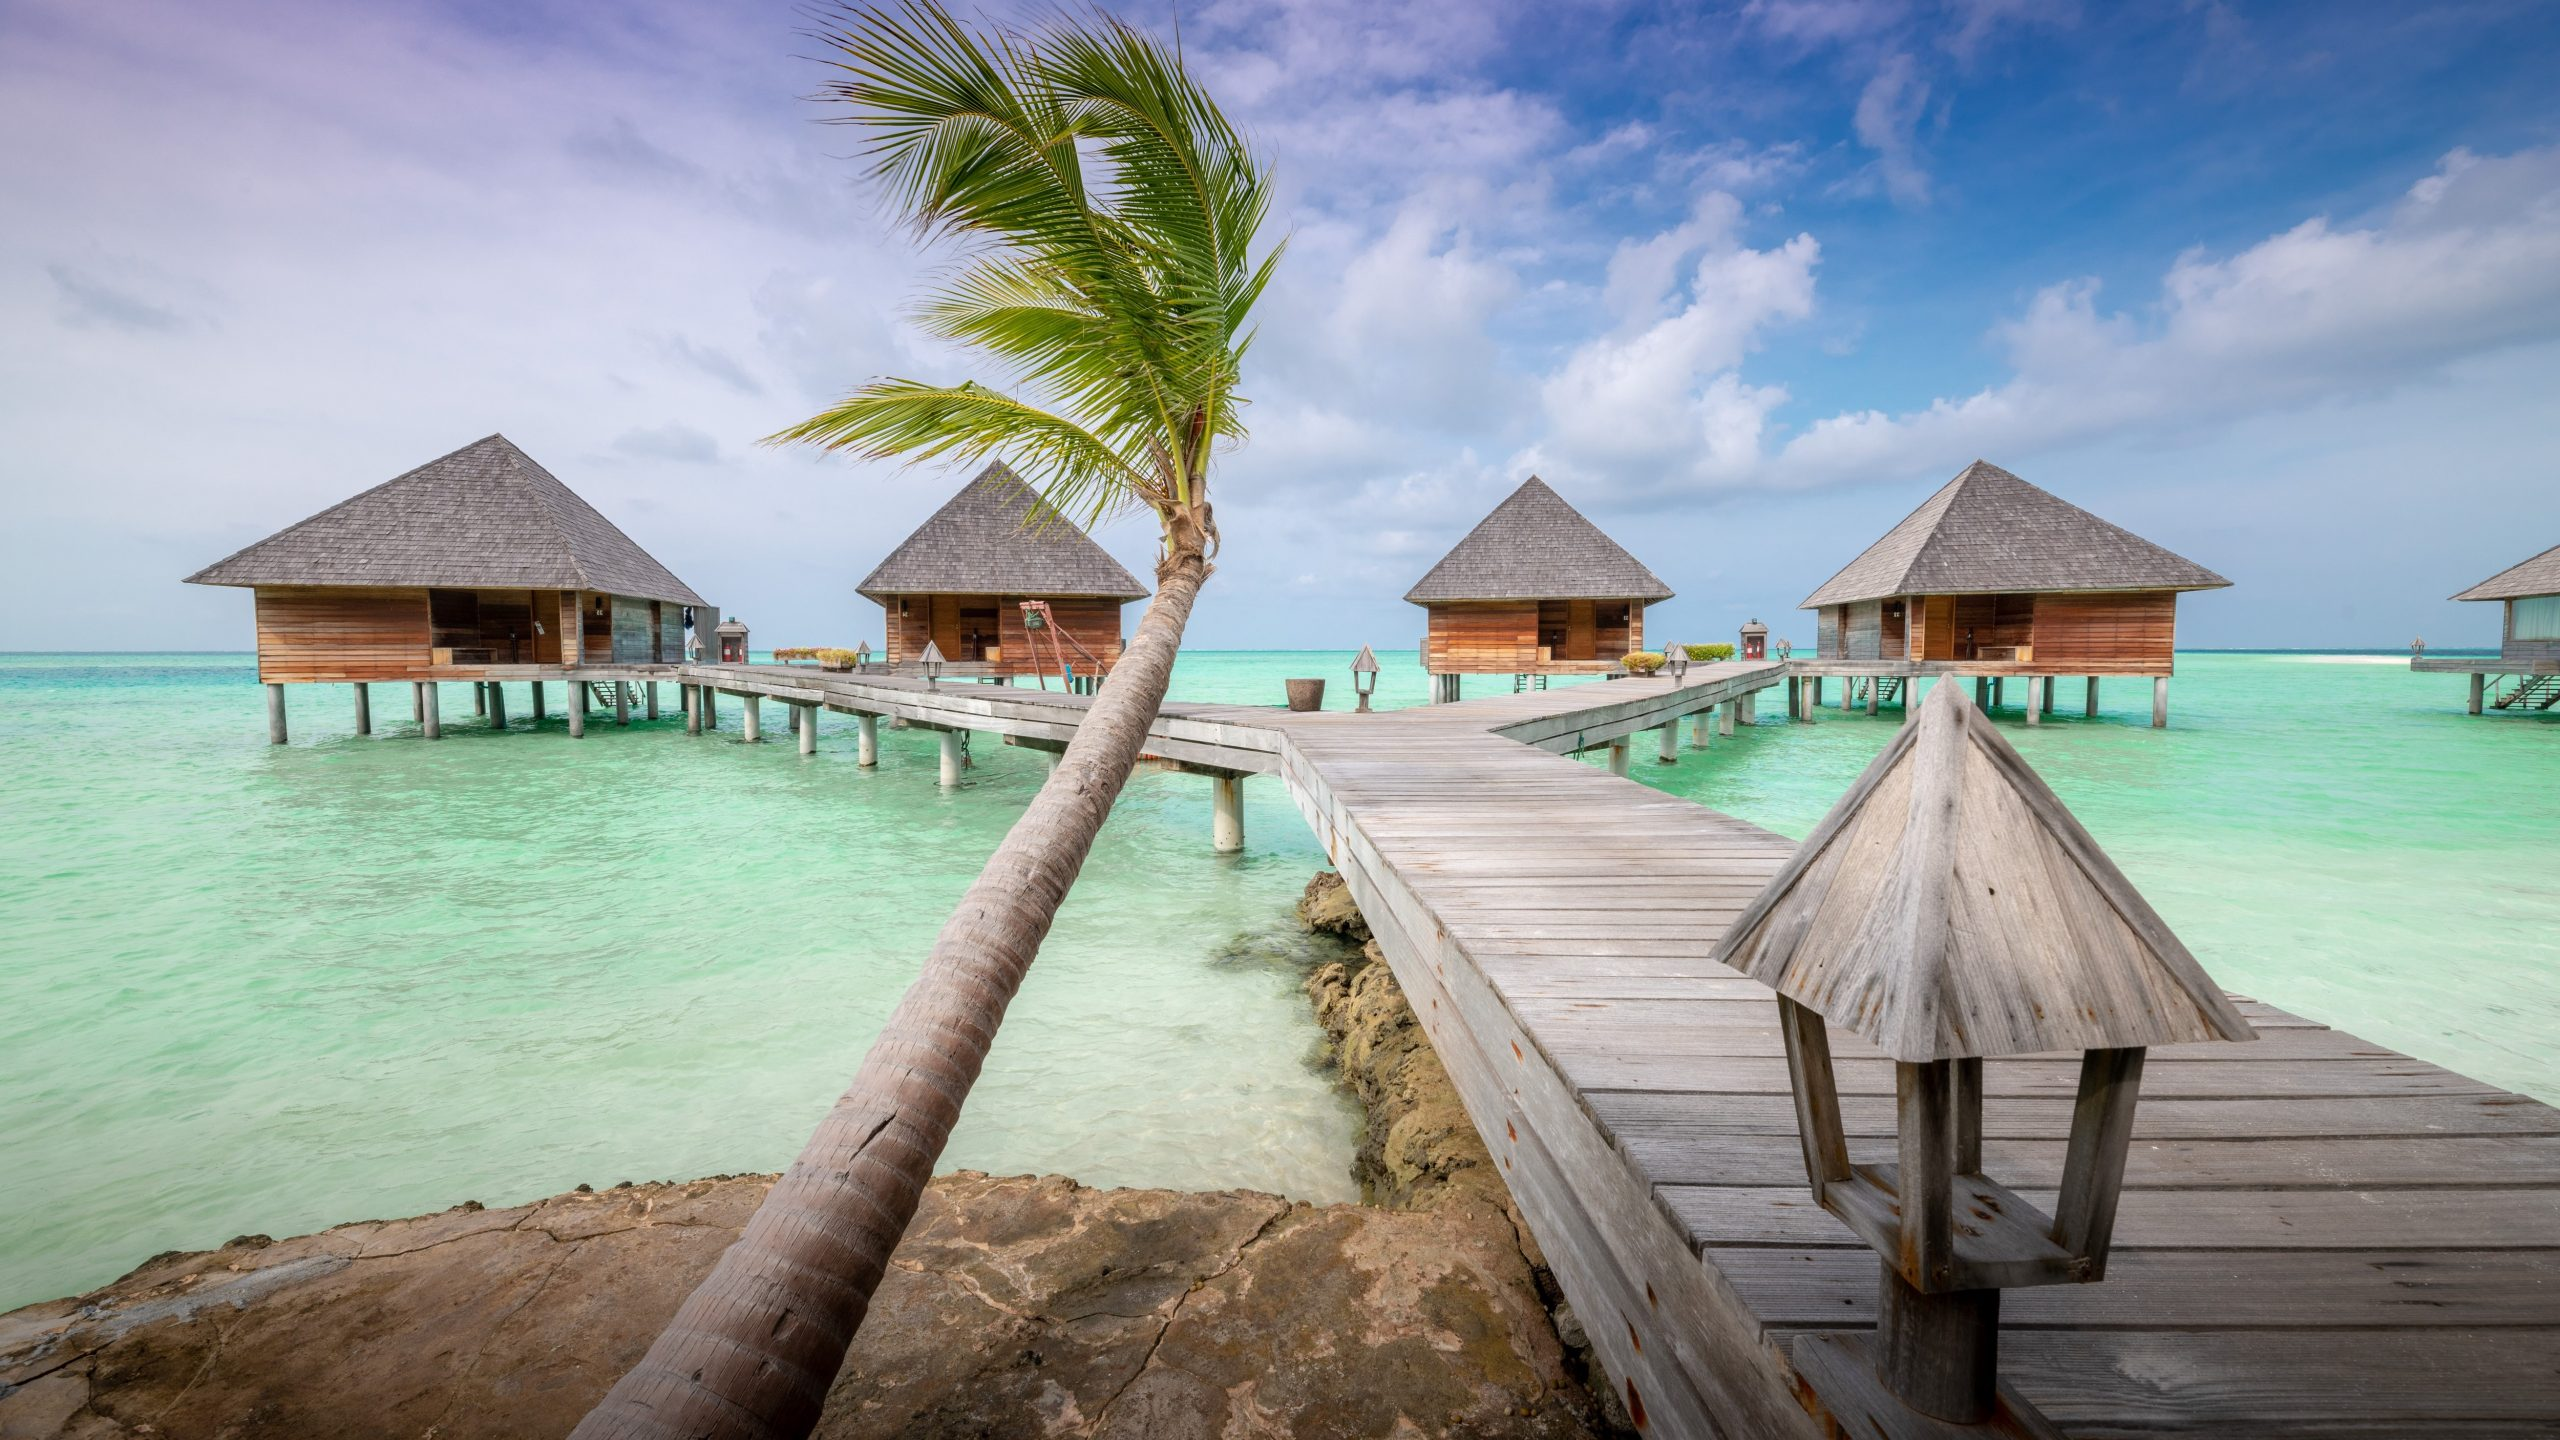 Private Island Resort Maldives_Bungalows